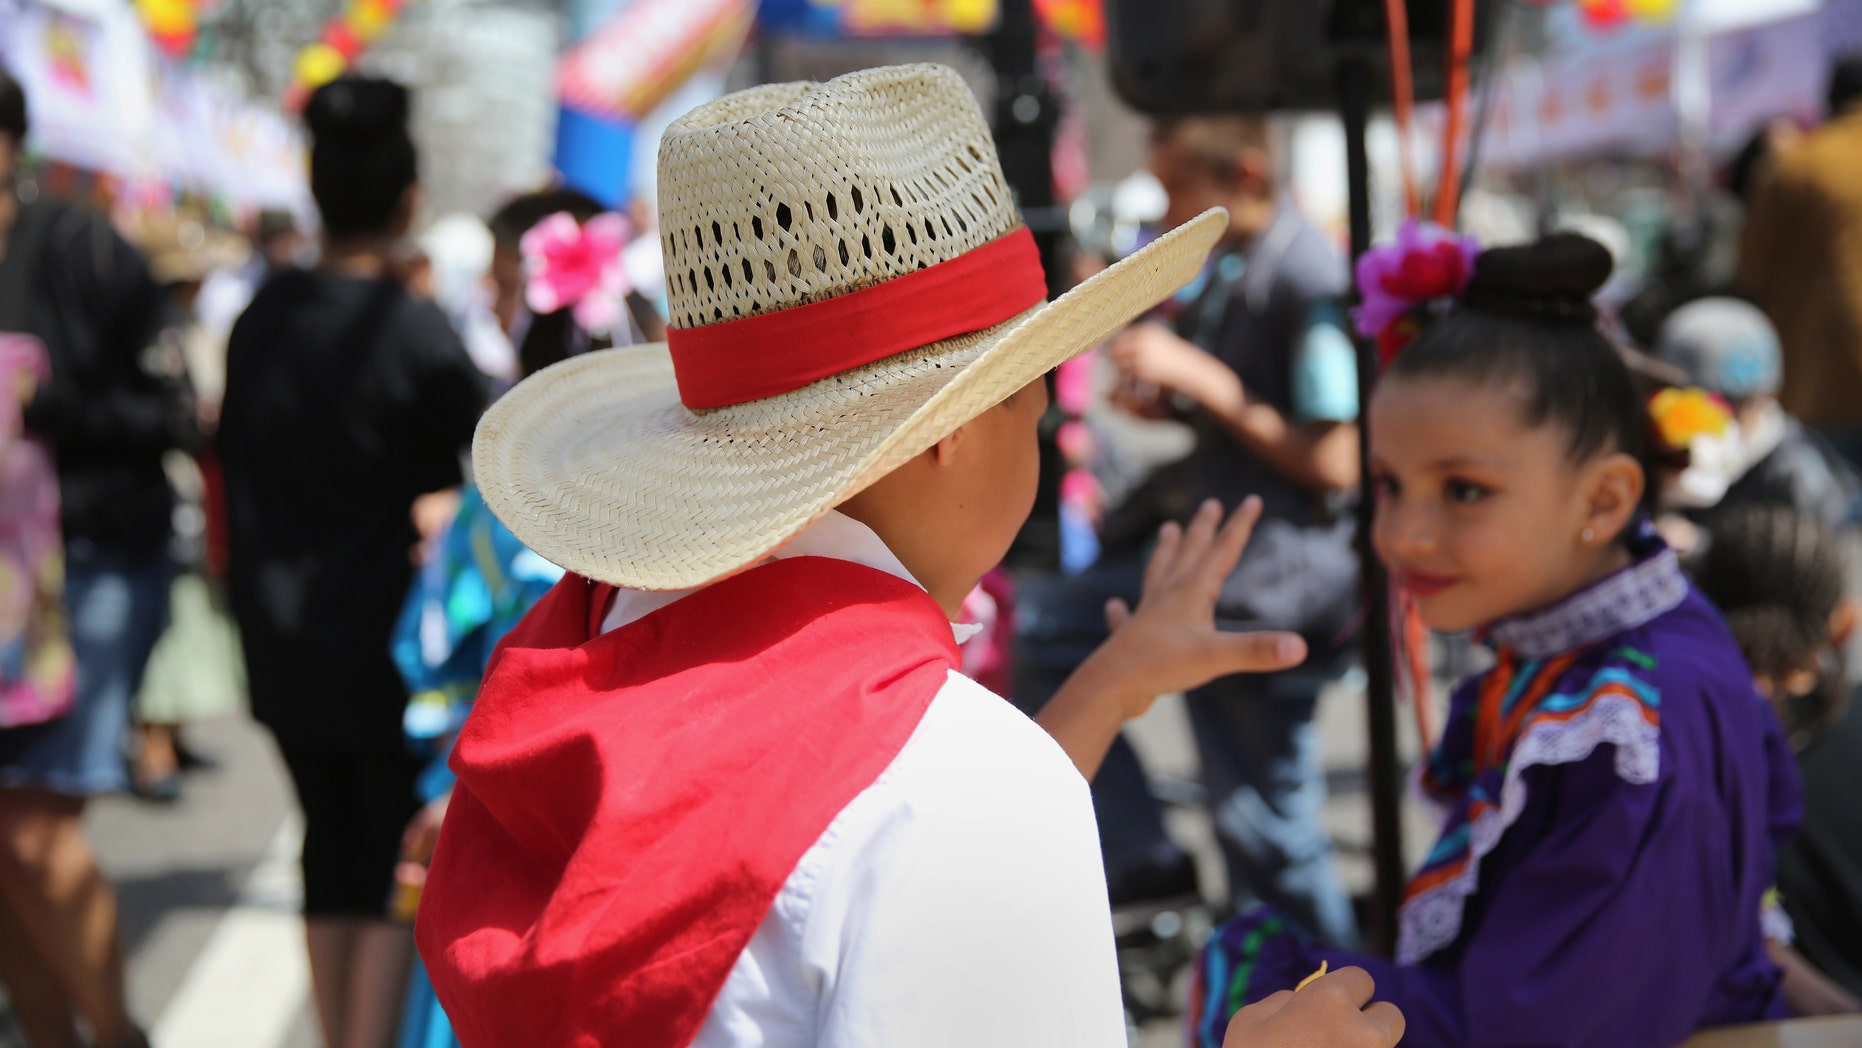 DENVER, CO - MAY 04:  Children dressed in traditional Mexican attire attend a Cinco de Mayo festival on May 4, 2013 in Denver, Colorado. Hundreds of thousands of people were expected to attend the two day event, billed as the largest Cinco de Mayo celebration in the United States. Cinco de Mayo observes the victory of the Mexican army over French forces on May 5, 1862 in the town of Puebla, Mexico. The festival celebrates Mexican culture and is one of the most popular annual Latino events in the United States.  (Photo by John Moore/Getty Images)